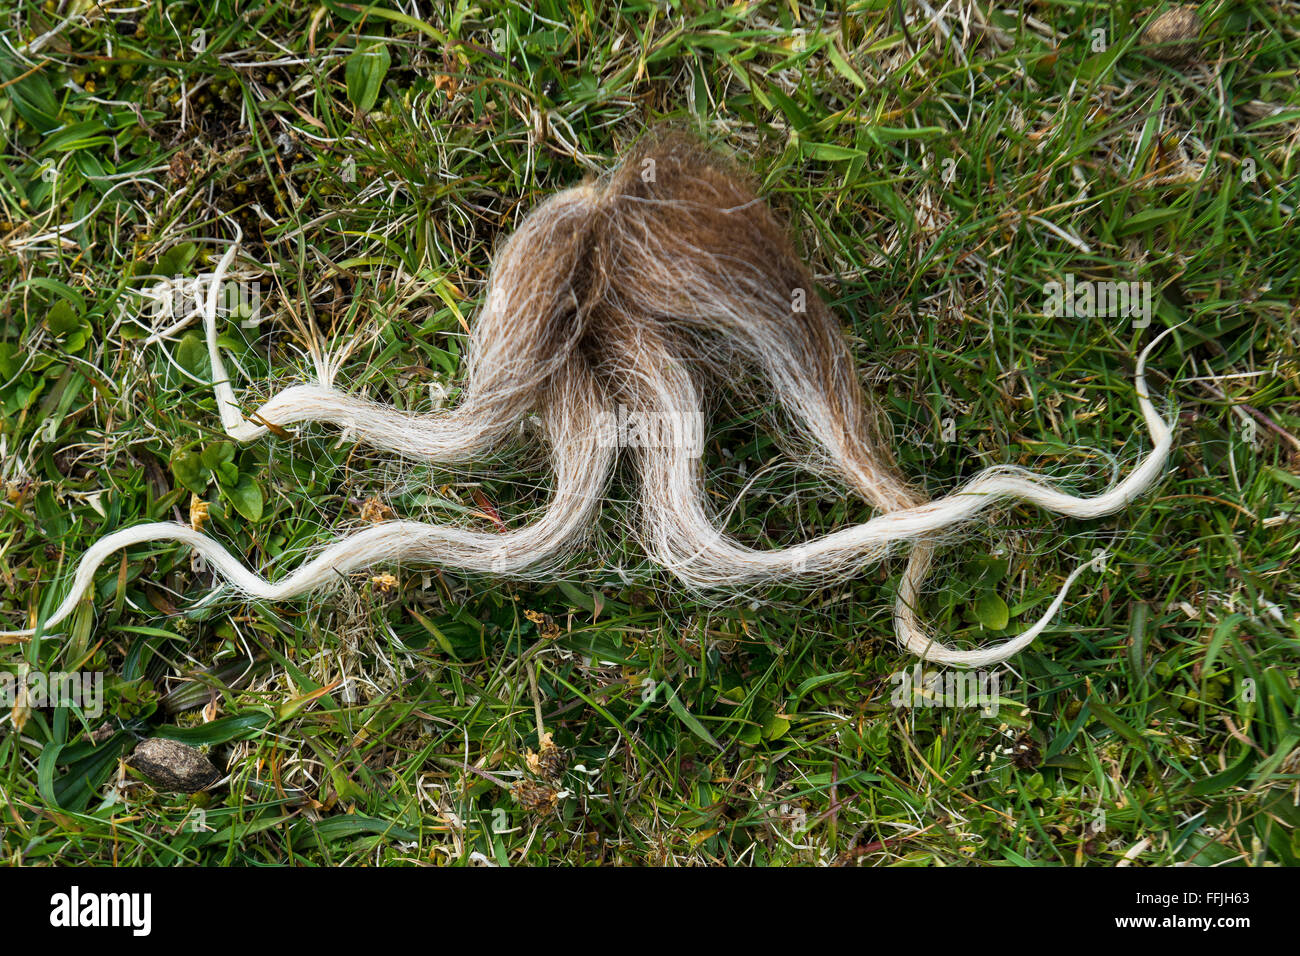 soay sheep strand of wool tuft discarded on st kilda - Stock Image